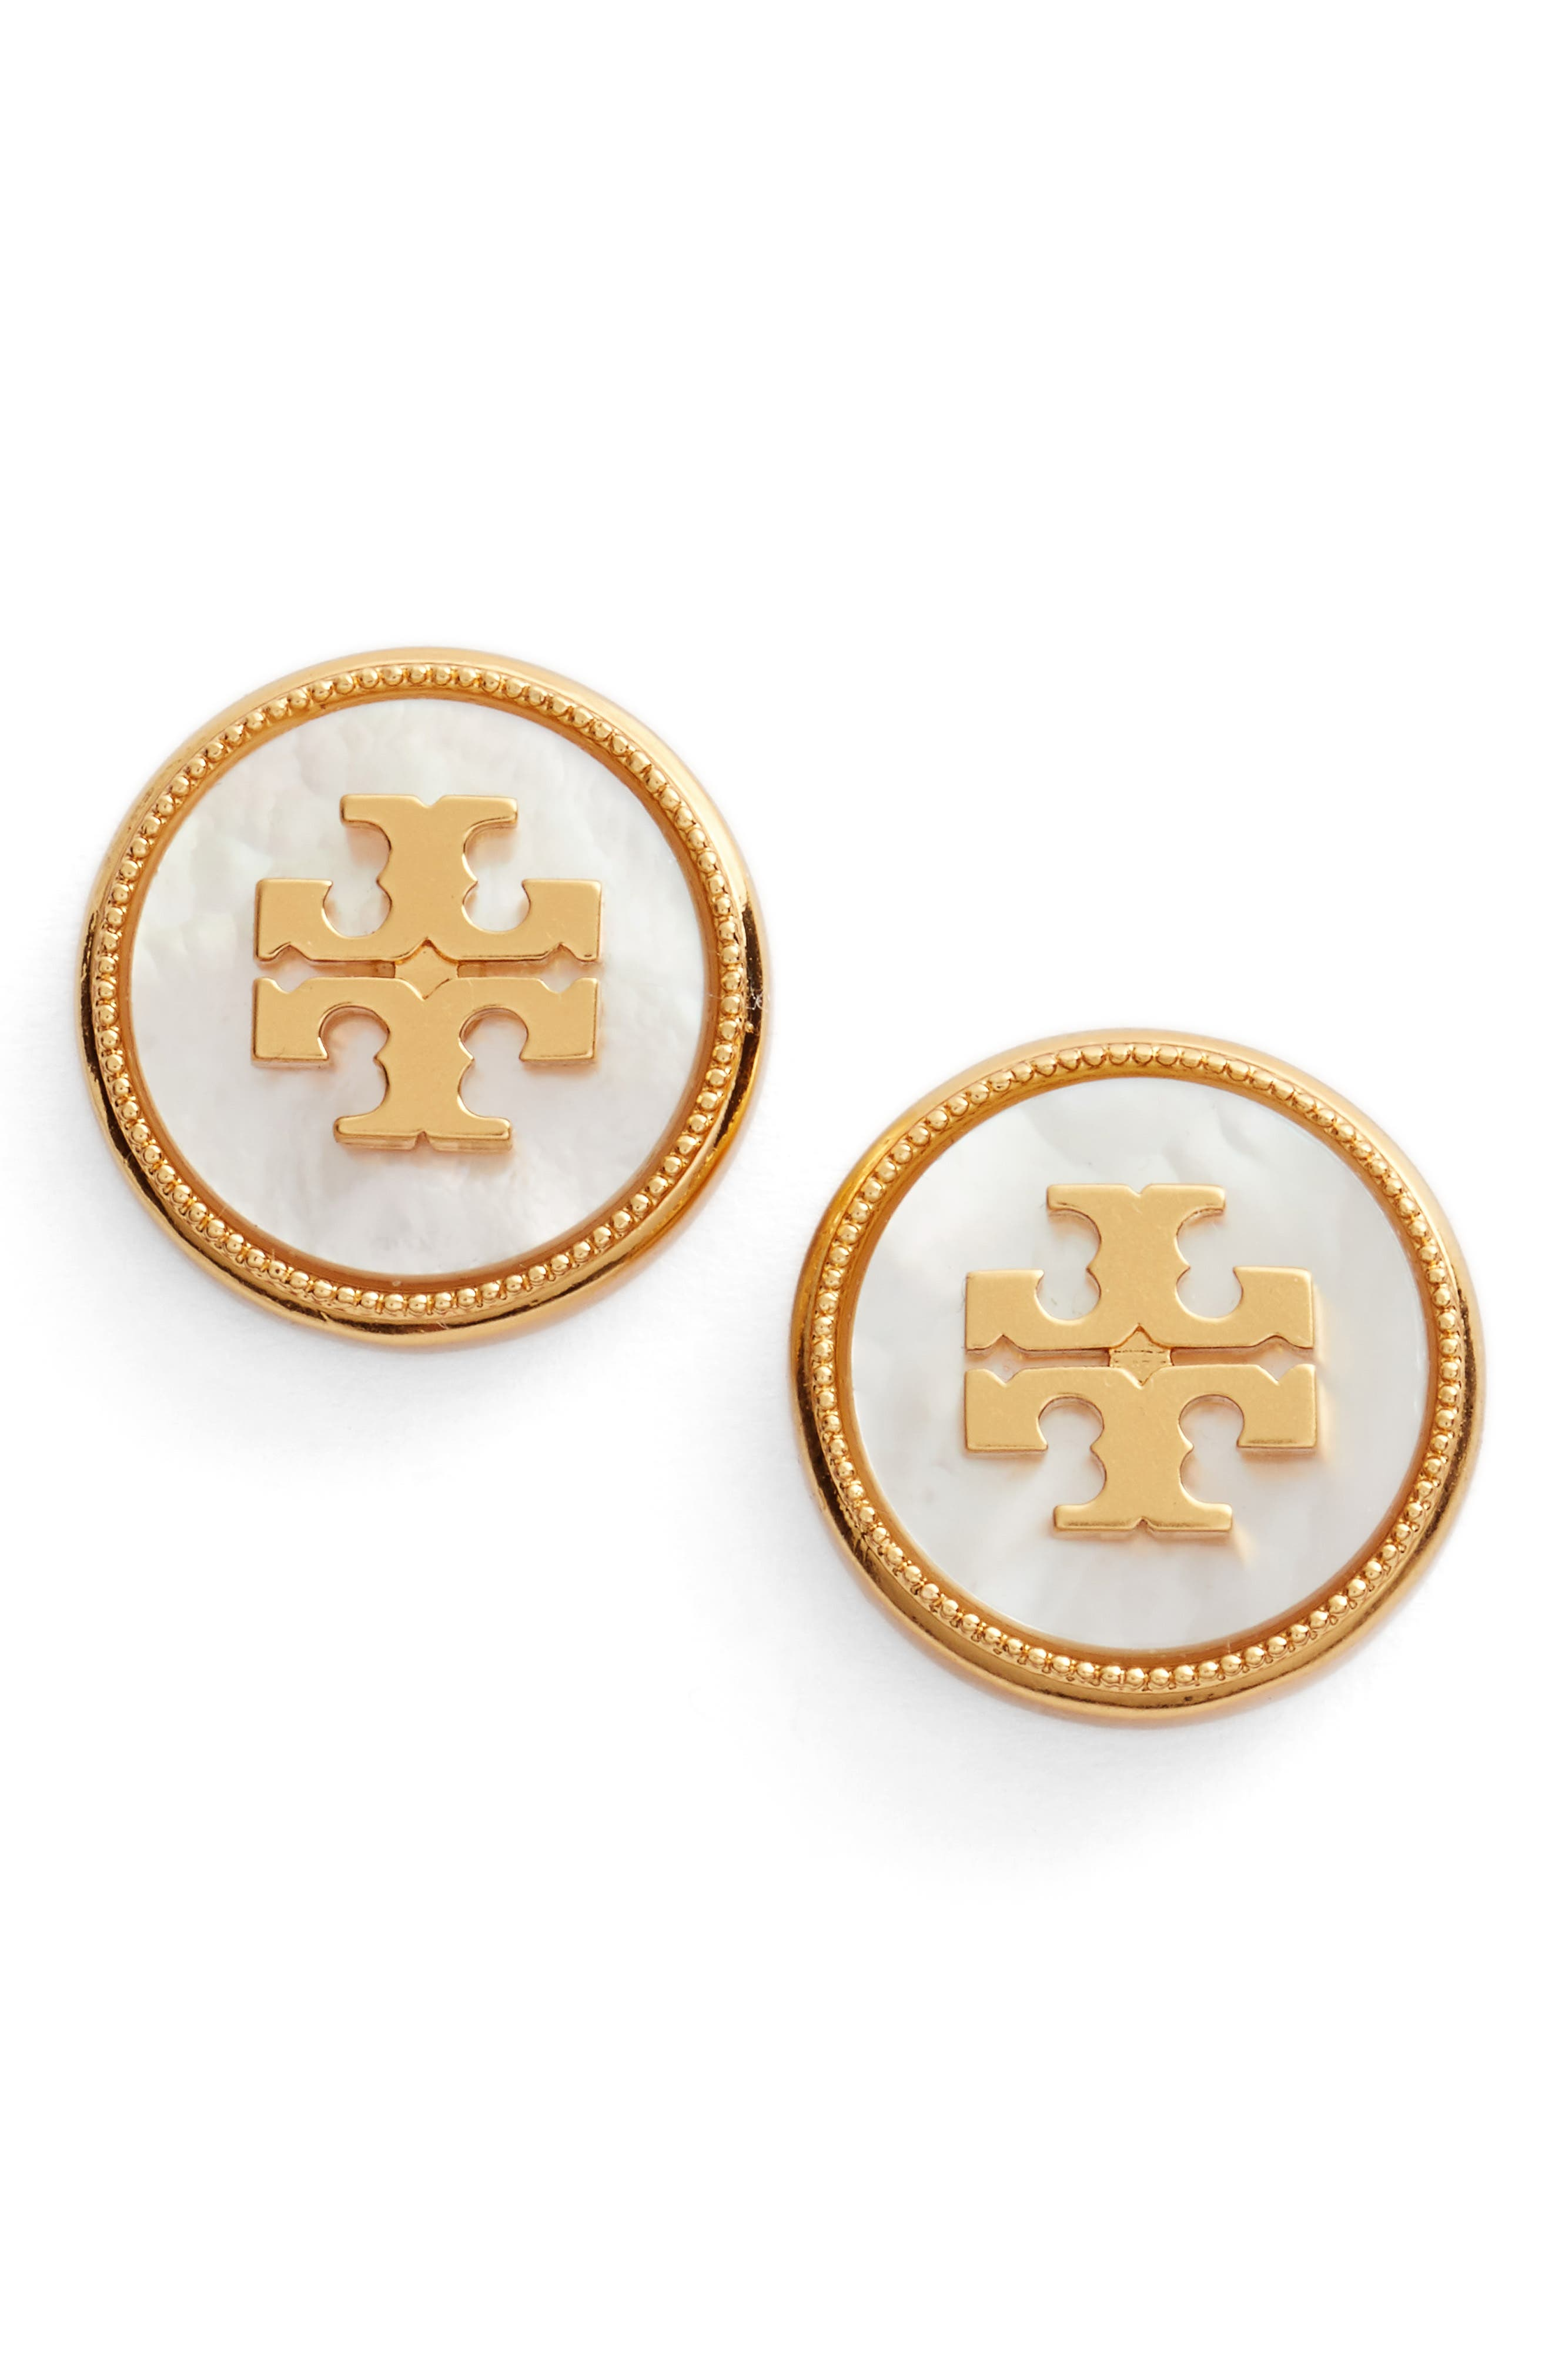 TORY BURCH Semiprecious Stone Stud Earrings, Main, color, MOTHER OF PEARL / VINTAGE GOLD